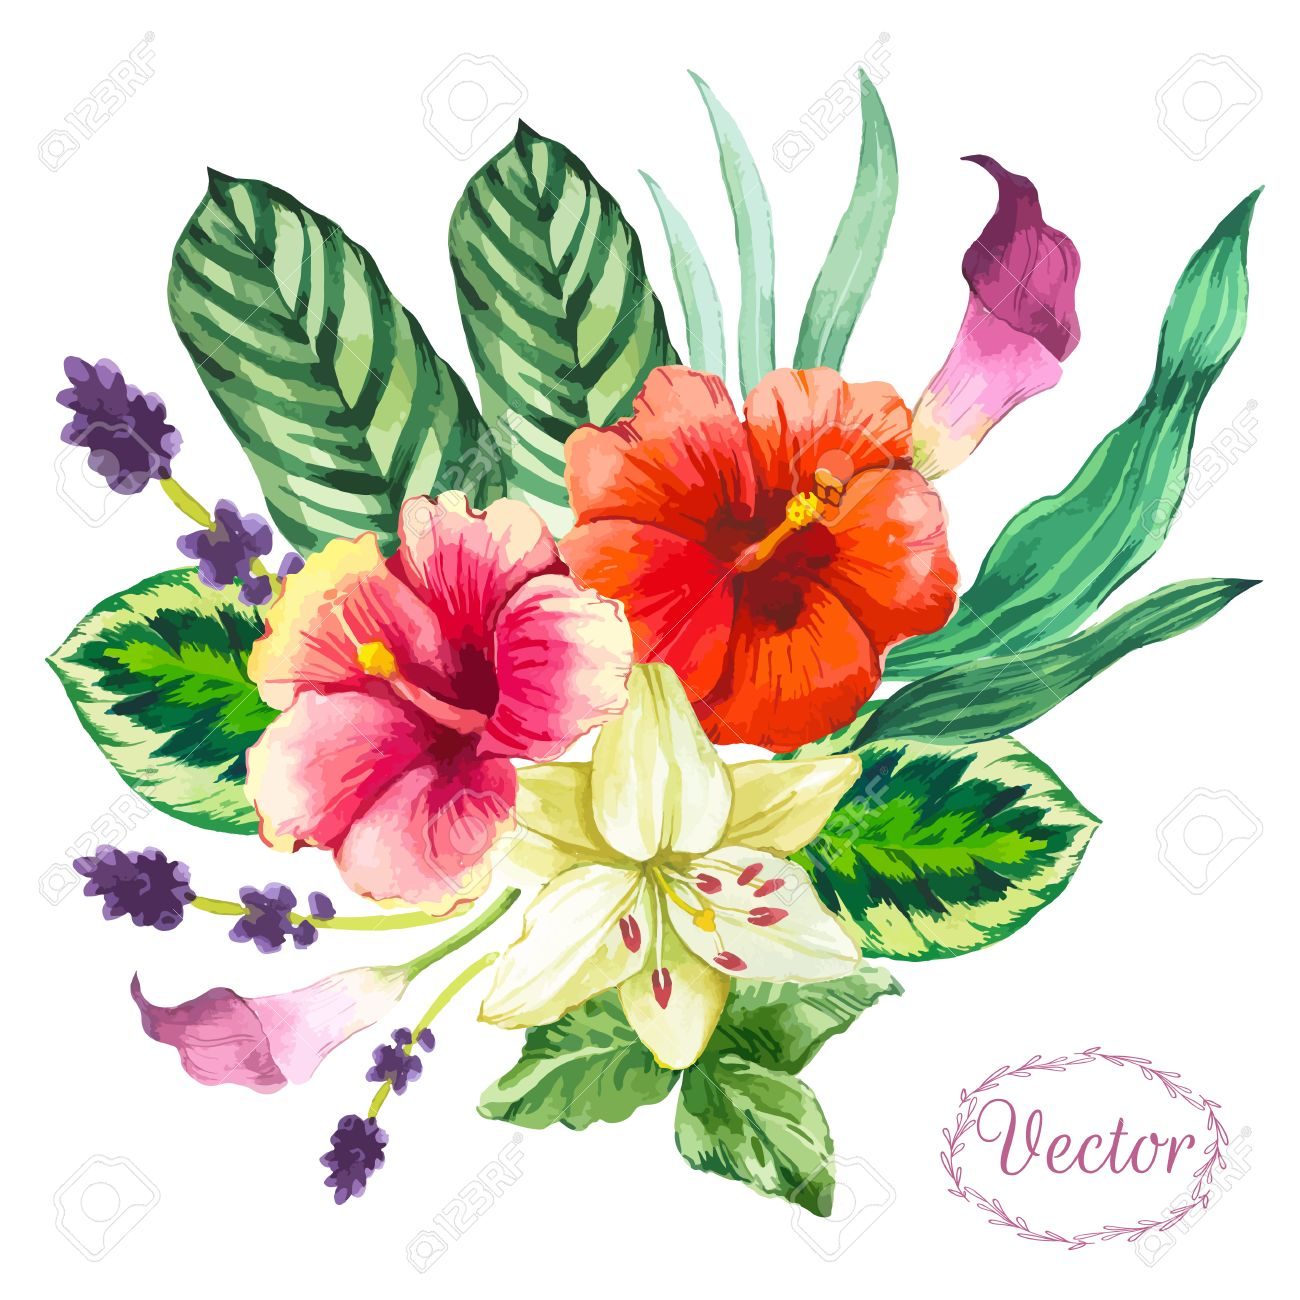 Beautiful bouquet tropical flowers and plants on white background beautiful bouquet tropical flowers and plants on white background composition with monstera and palm leaves mightylinksfo